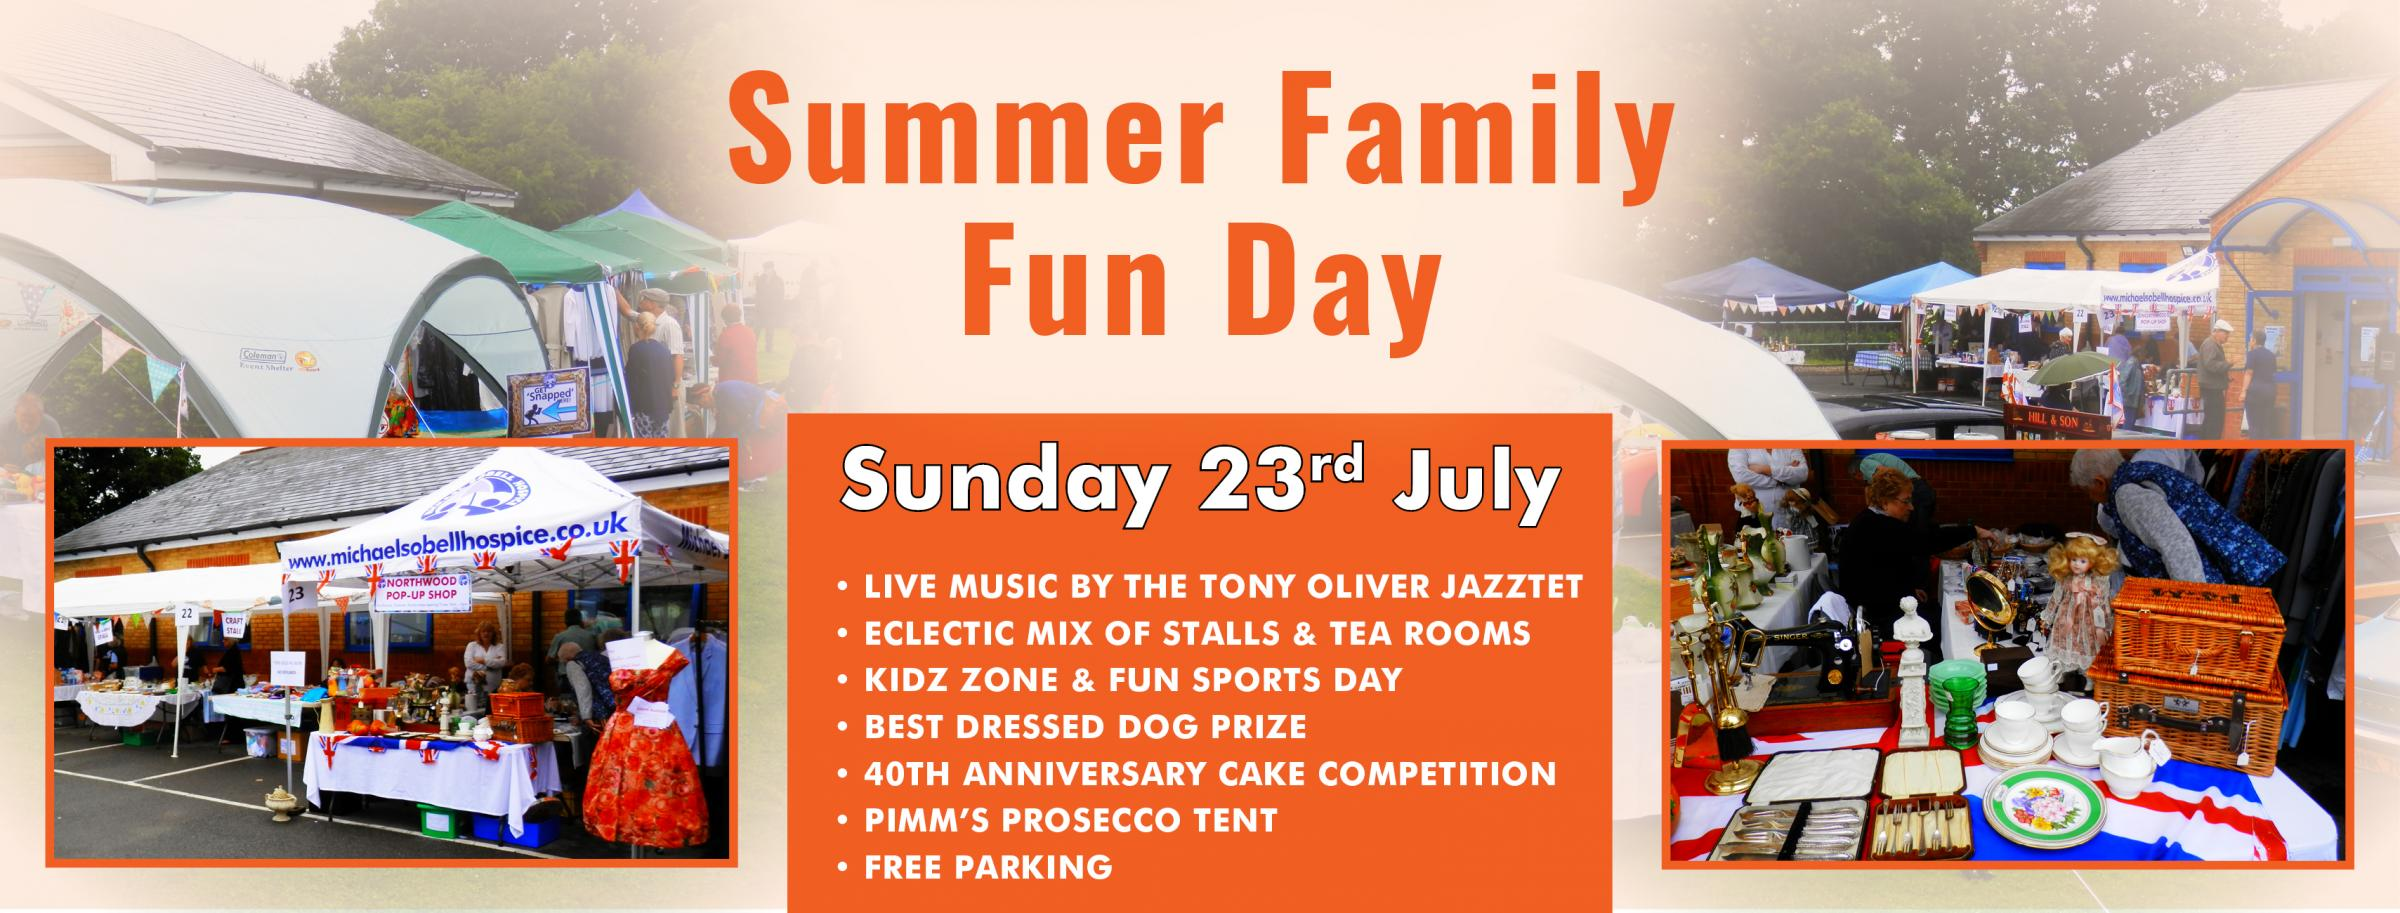 Summer Family Fun Day in aid of Michael Sobell Hospice